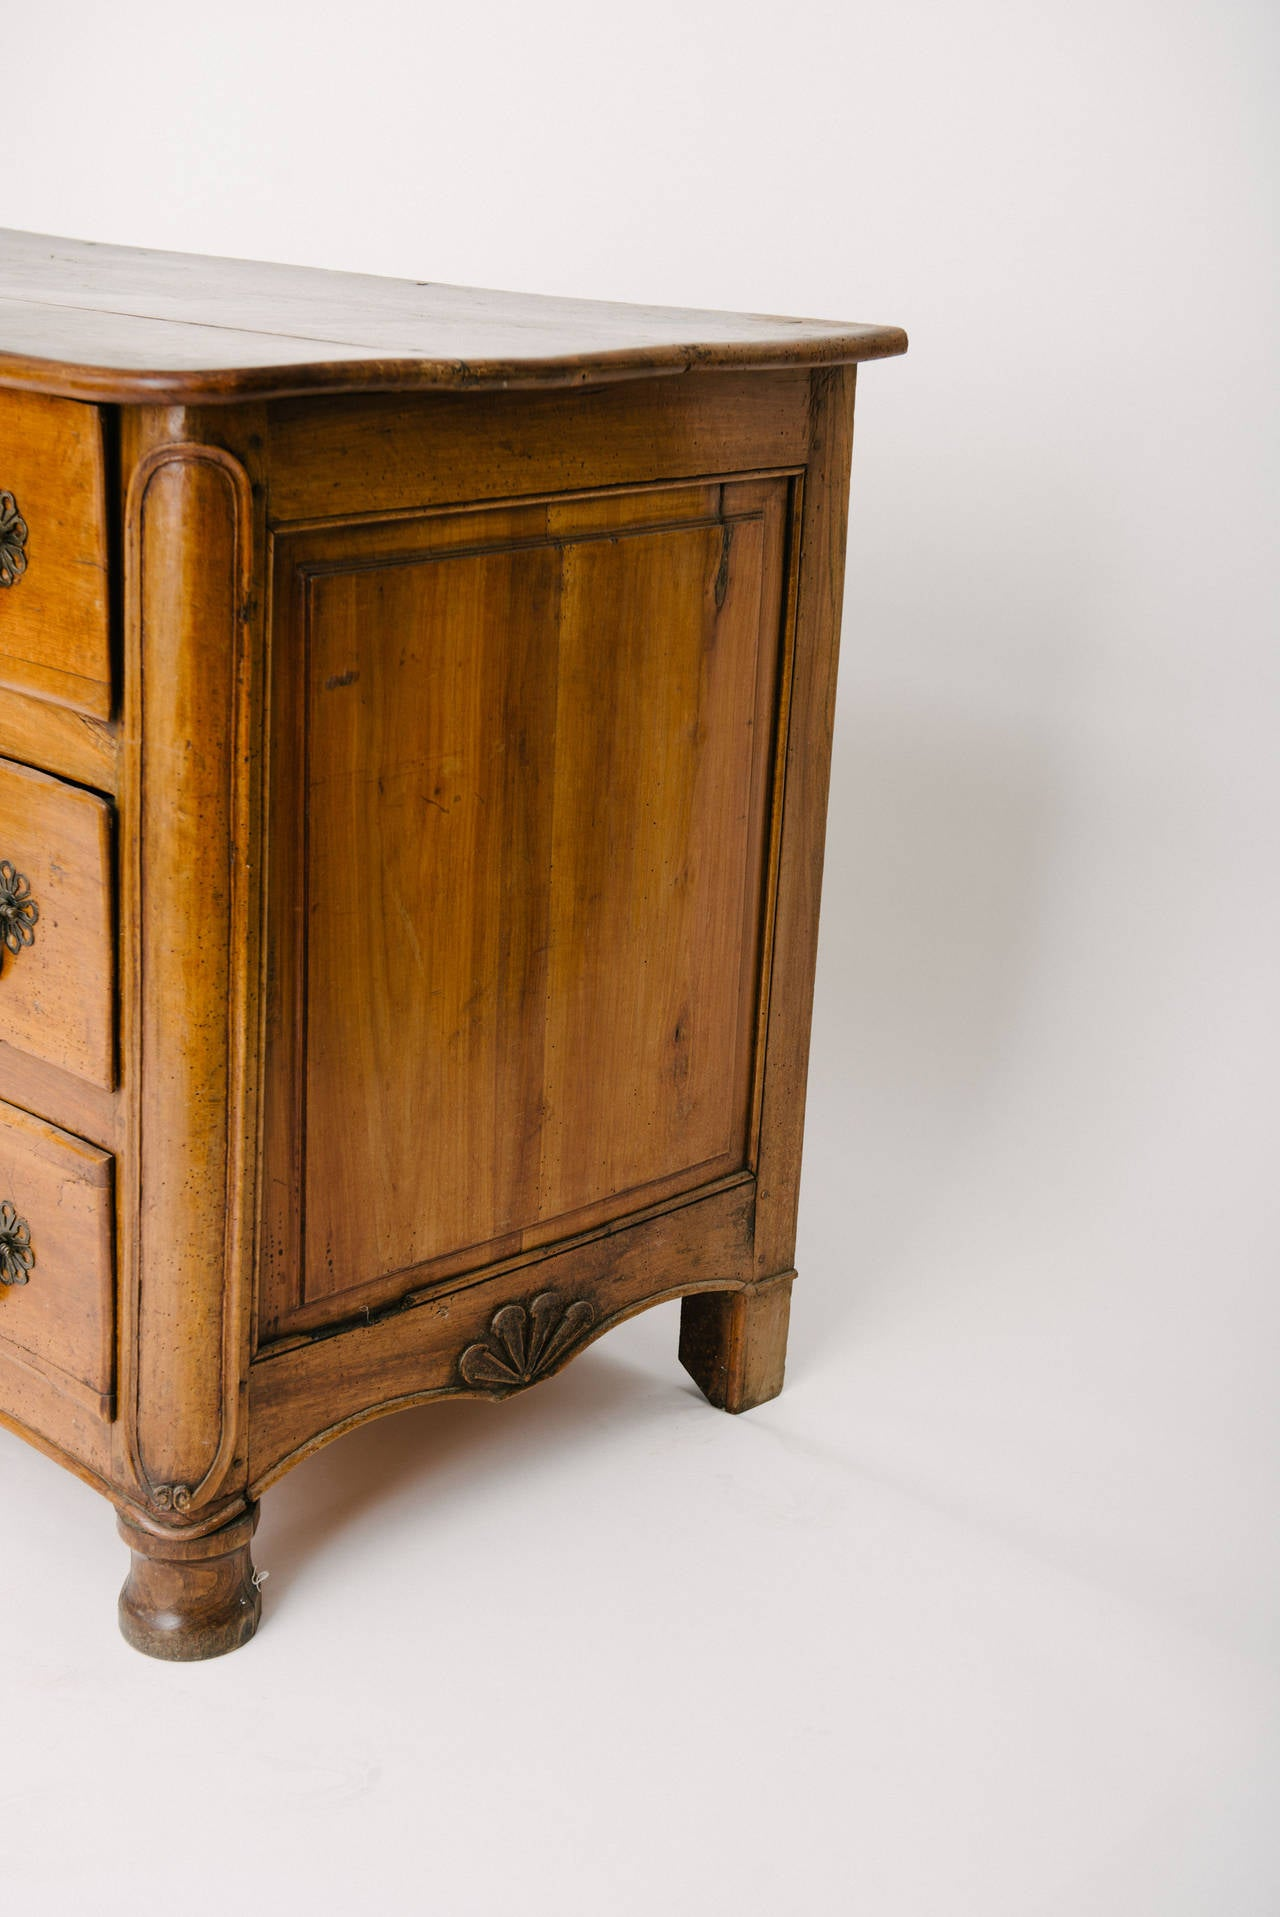 17th century french louis xiv walnut commode for sale at - 17th century french cuisine ...